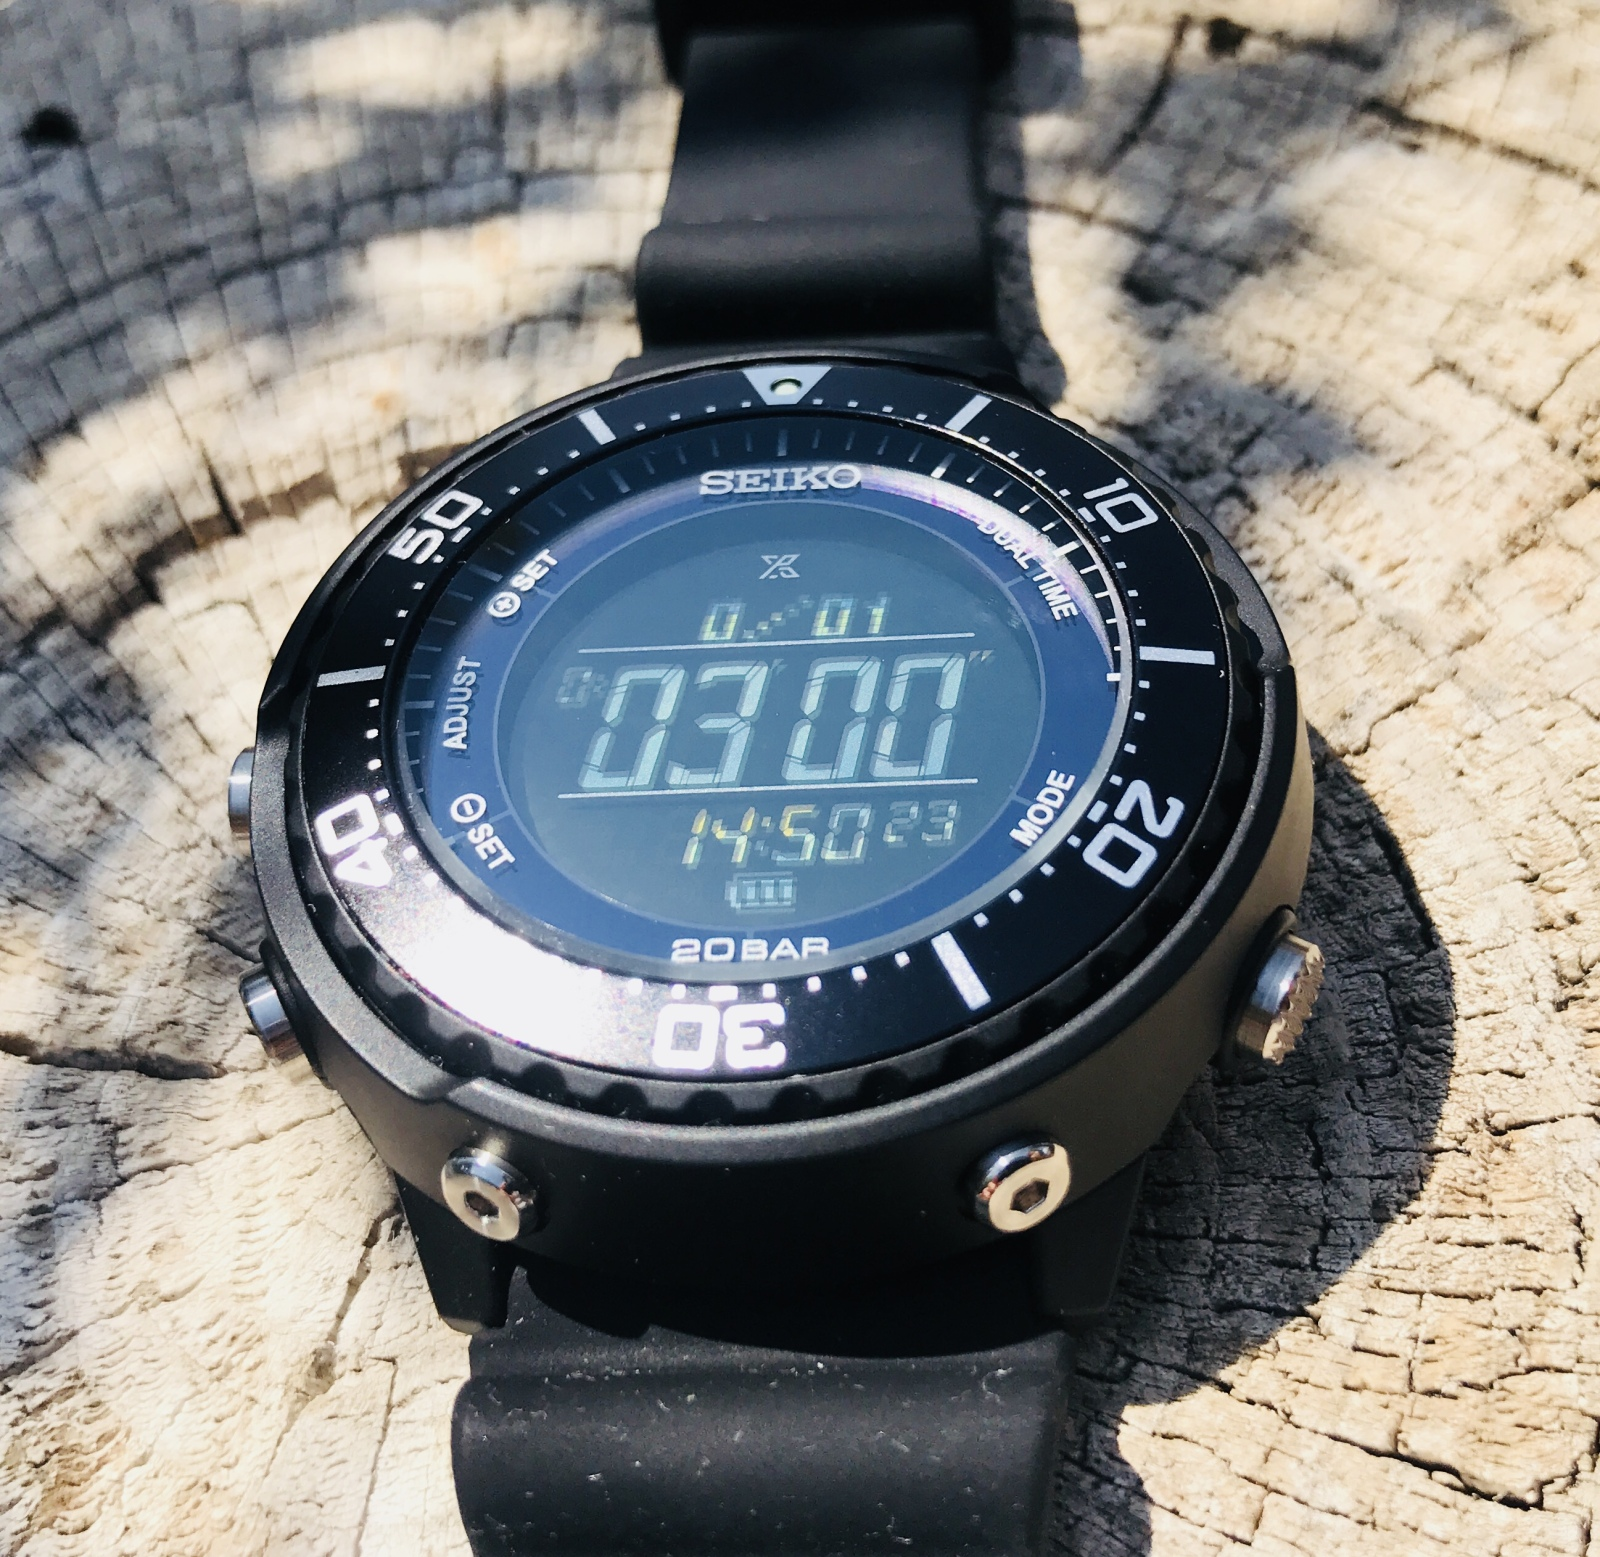 Seiko Prospex Digital Tuna SBEP001 Ejj1cl